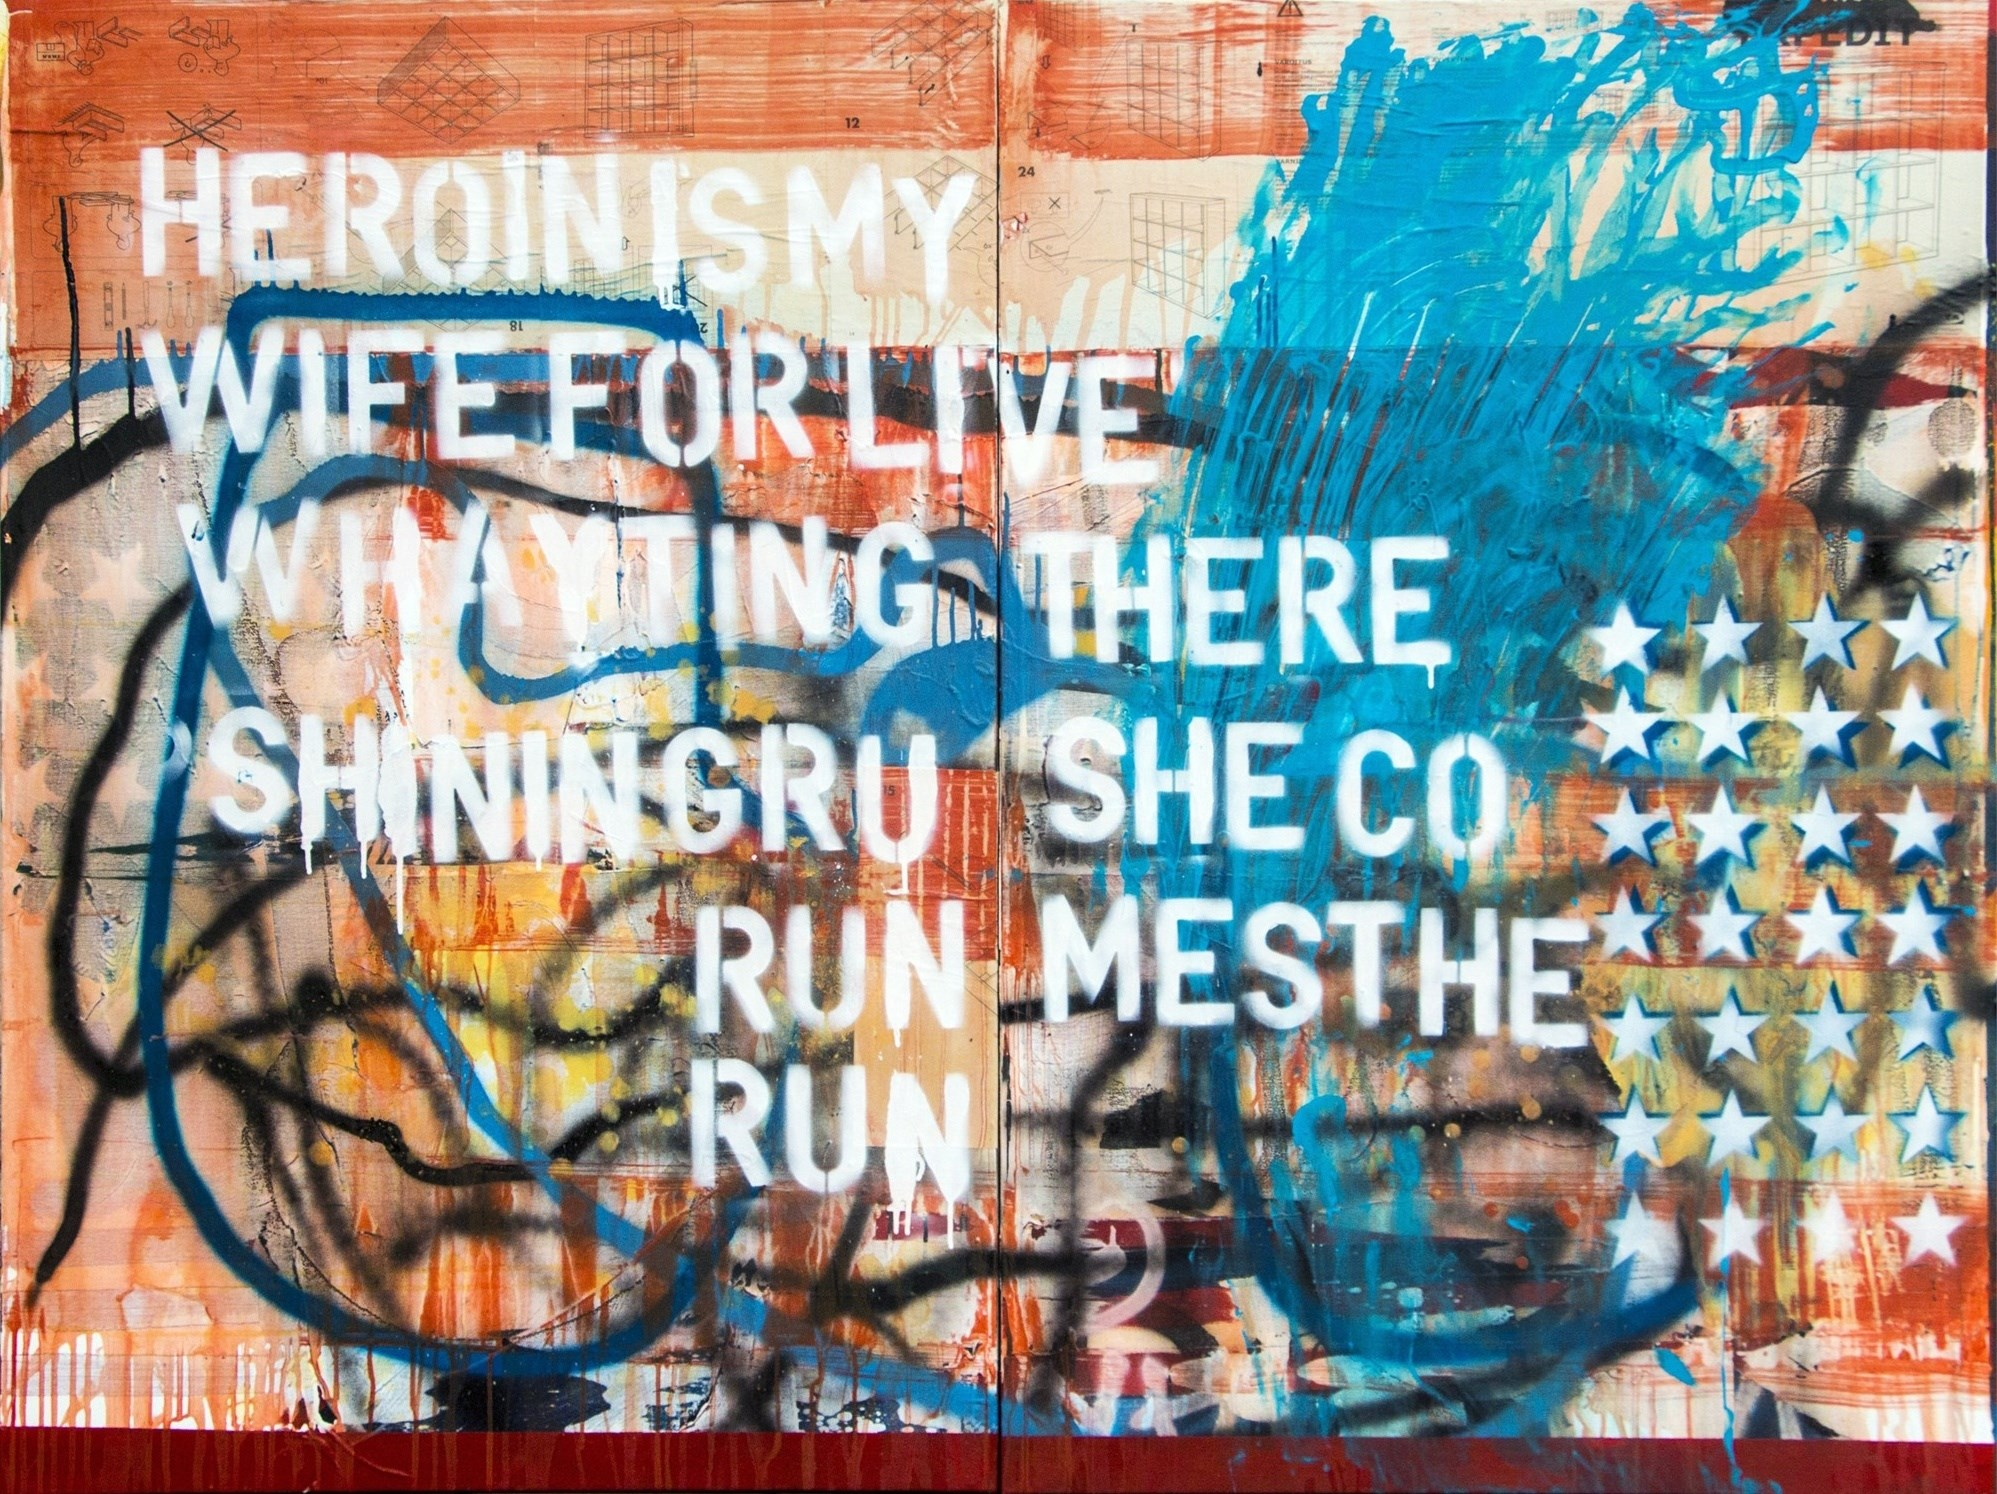 Heroin is My Wife For Live, Pintura Acrílico Abstrato original por Paulo Moreira